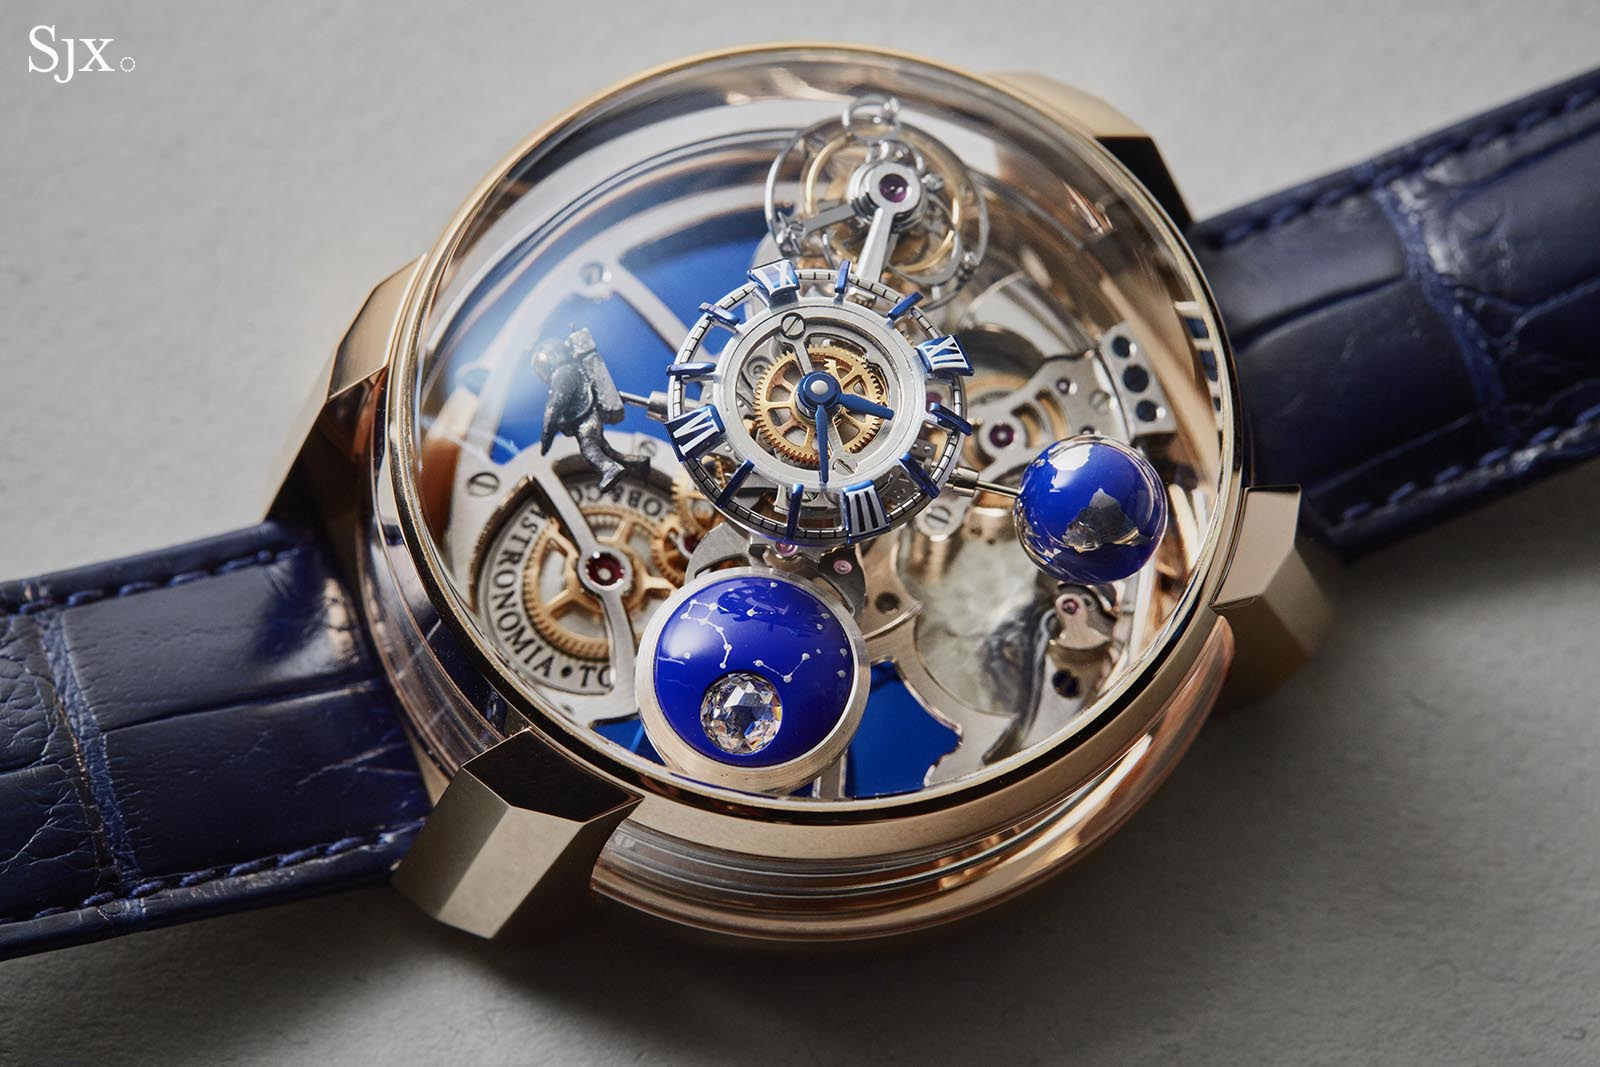 Hands on with the jacob co astronomia maestro minute repeater architectural imaginative for Jacob co watches